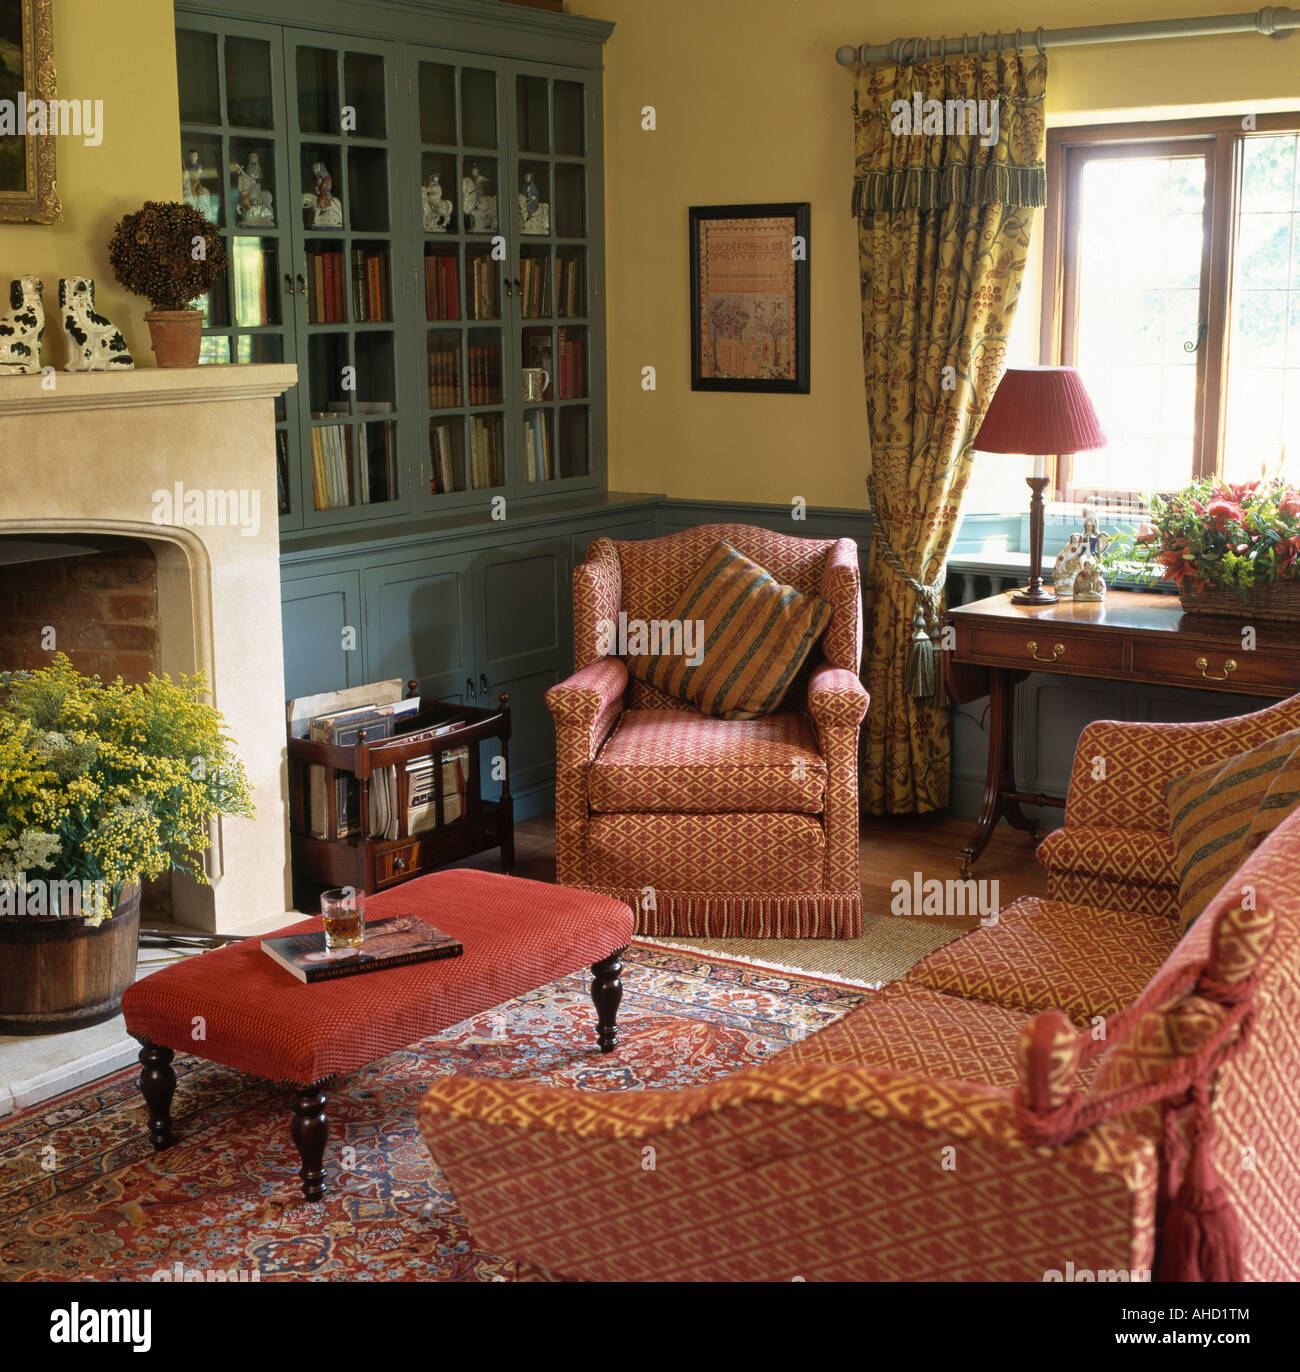 Patterned red sofa and armchair in livingroom with pale